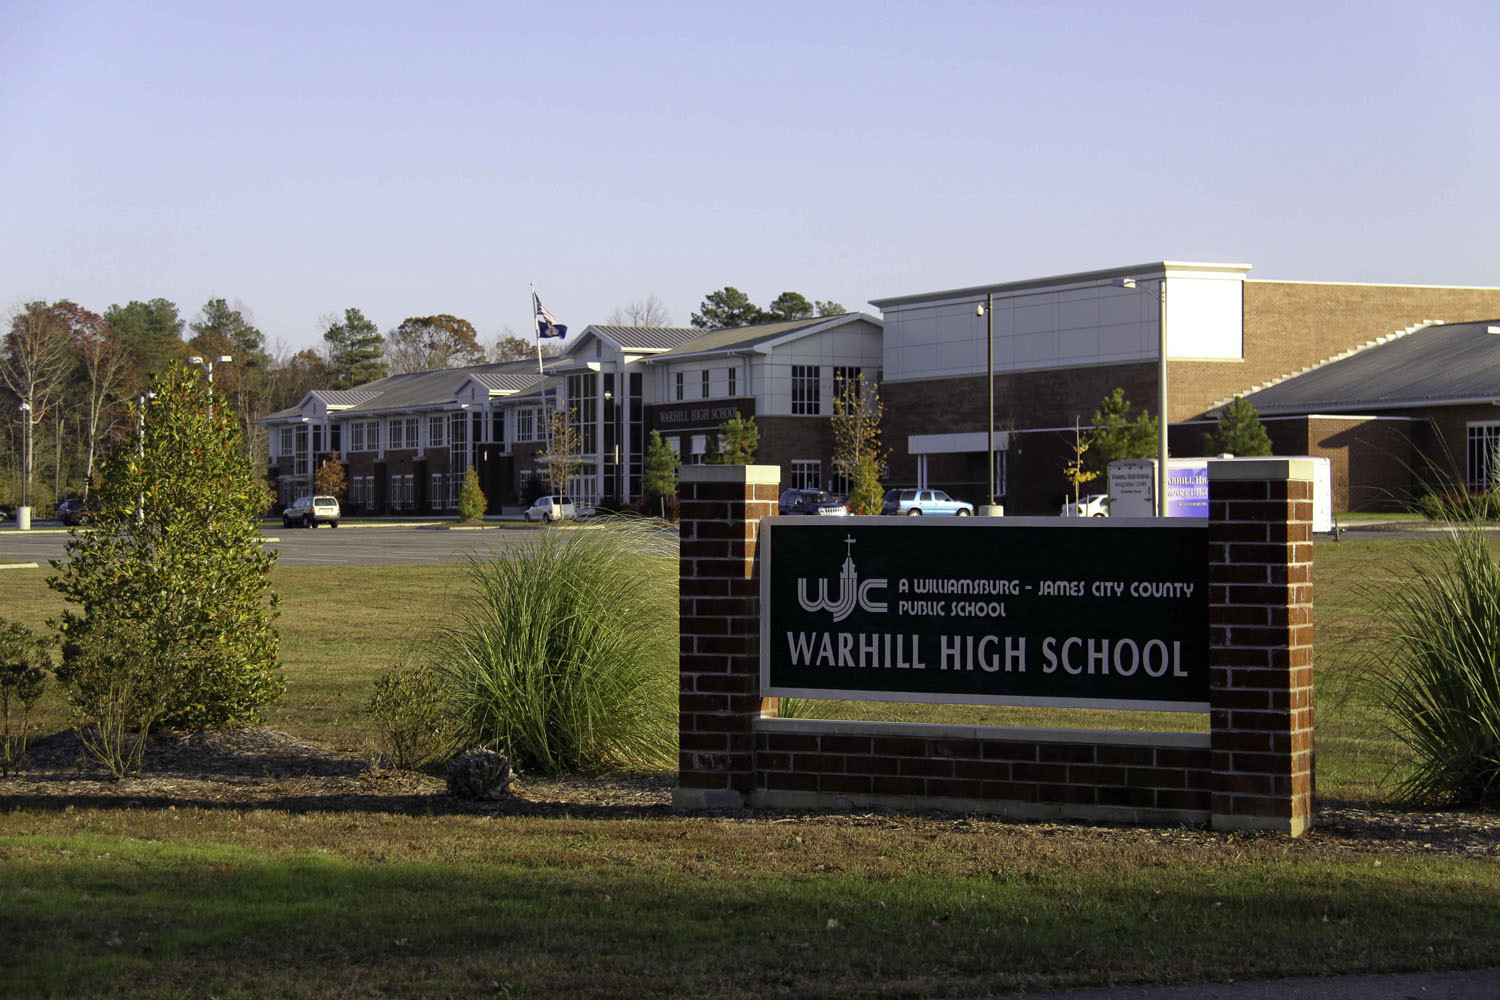 Racially Charged Social Media Post Sparks Incident At Warhill High